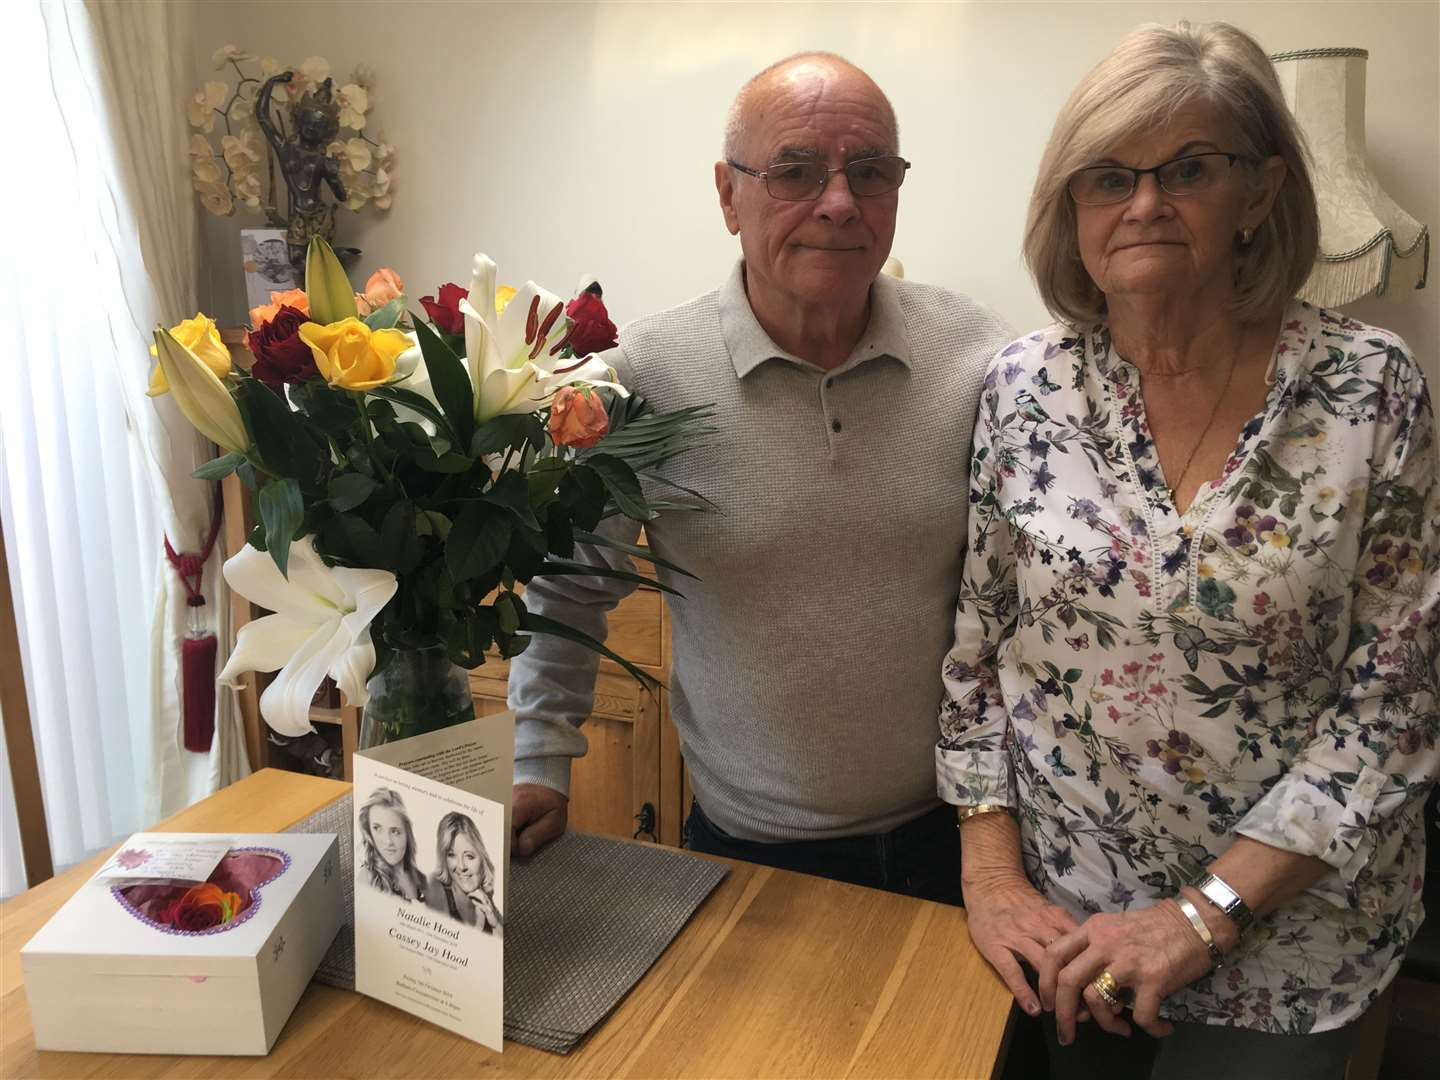 Ray and Carol Hood say they can never forgive Lucy Leadbeater